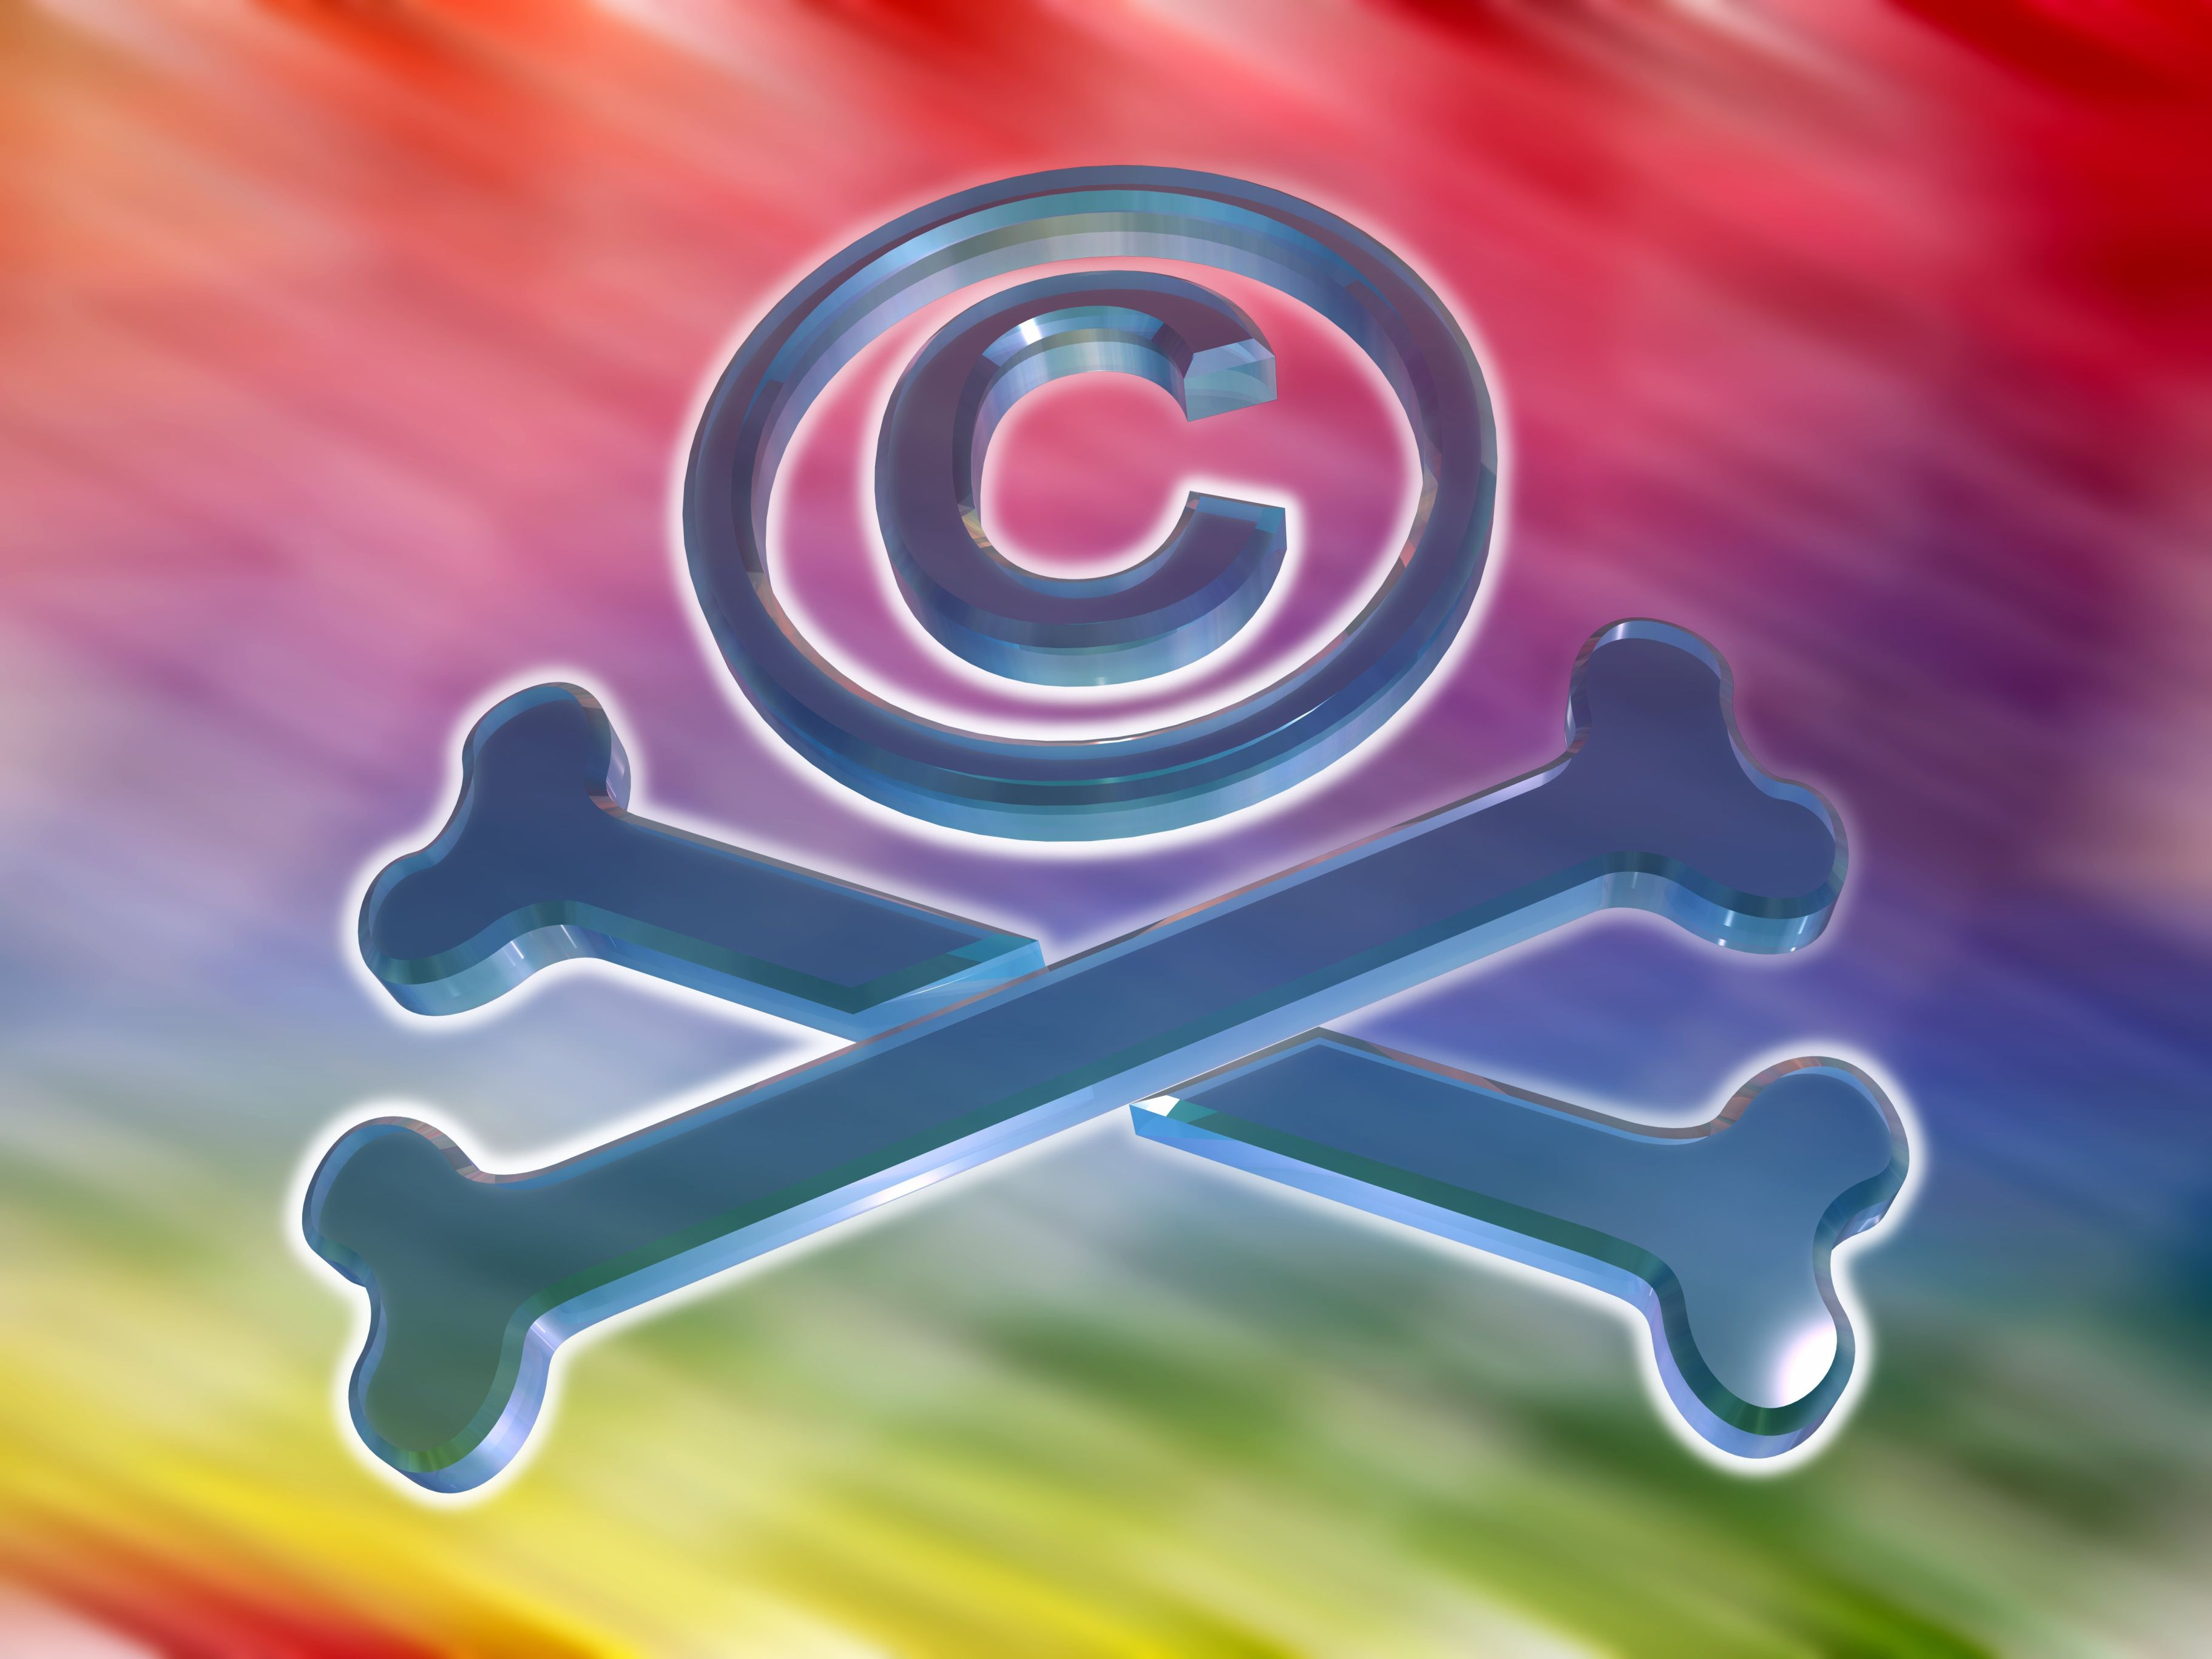 Creative works you can copyright and cant copyright biocorpaavc